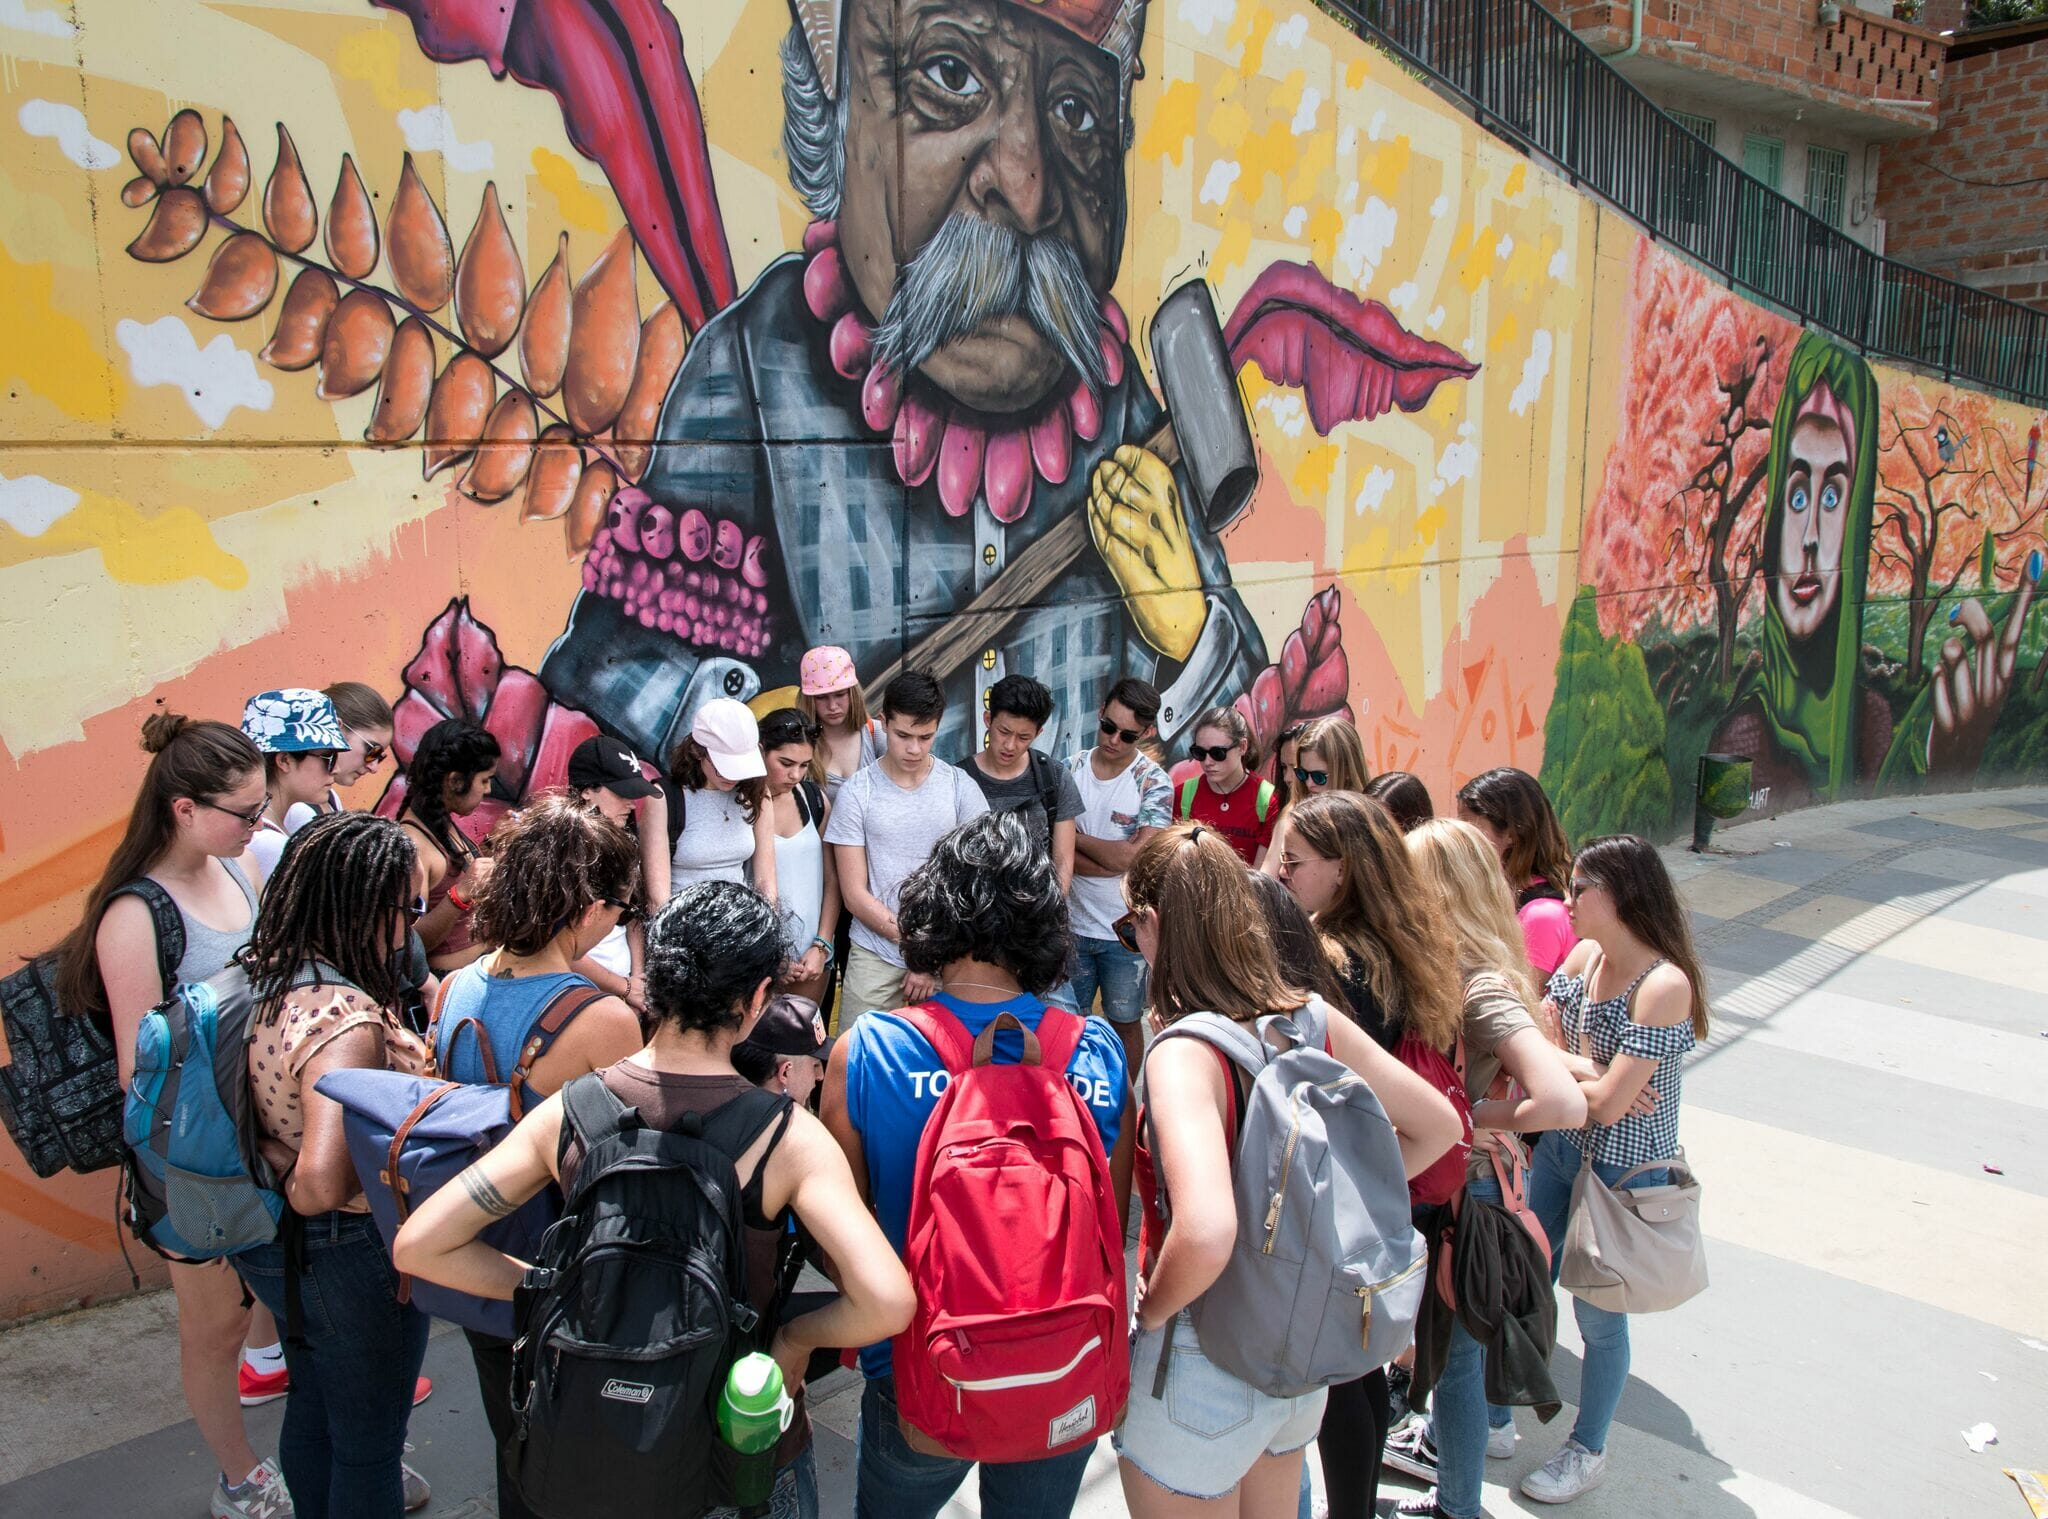 Students on graffiti tour in Medellin